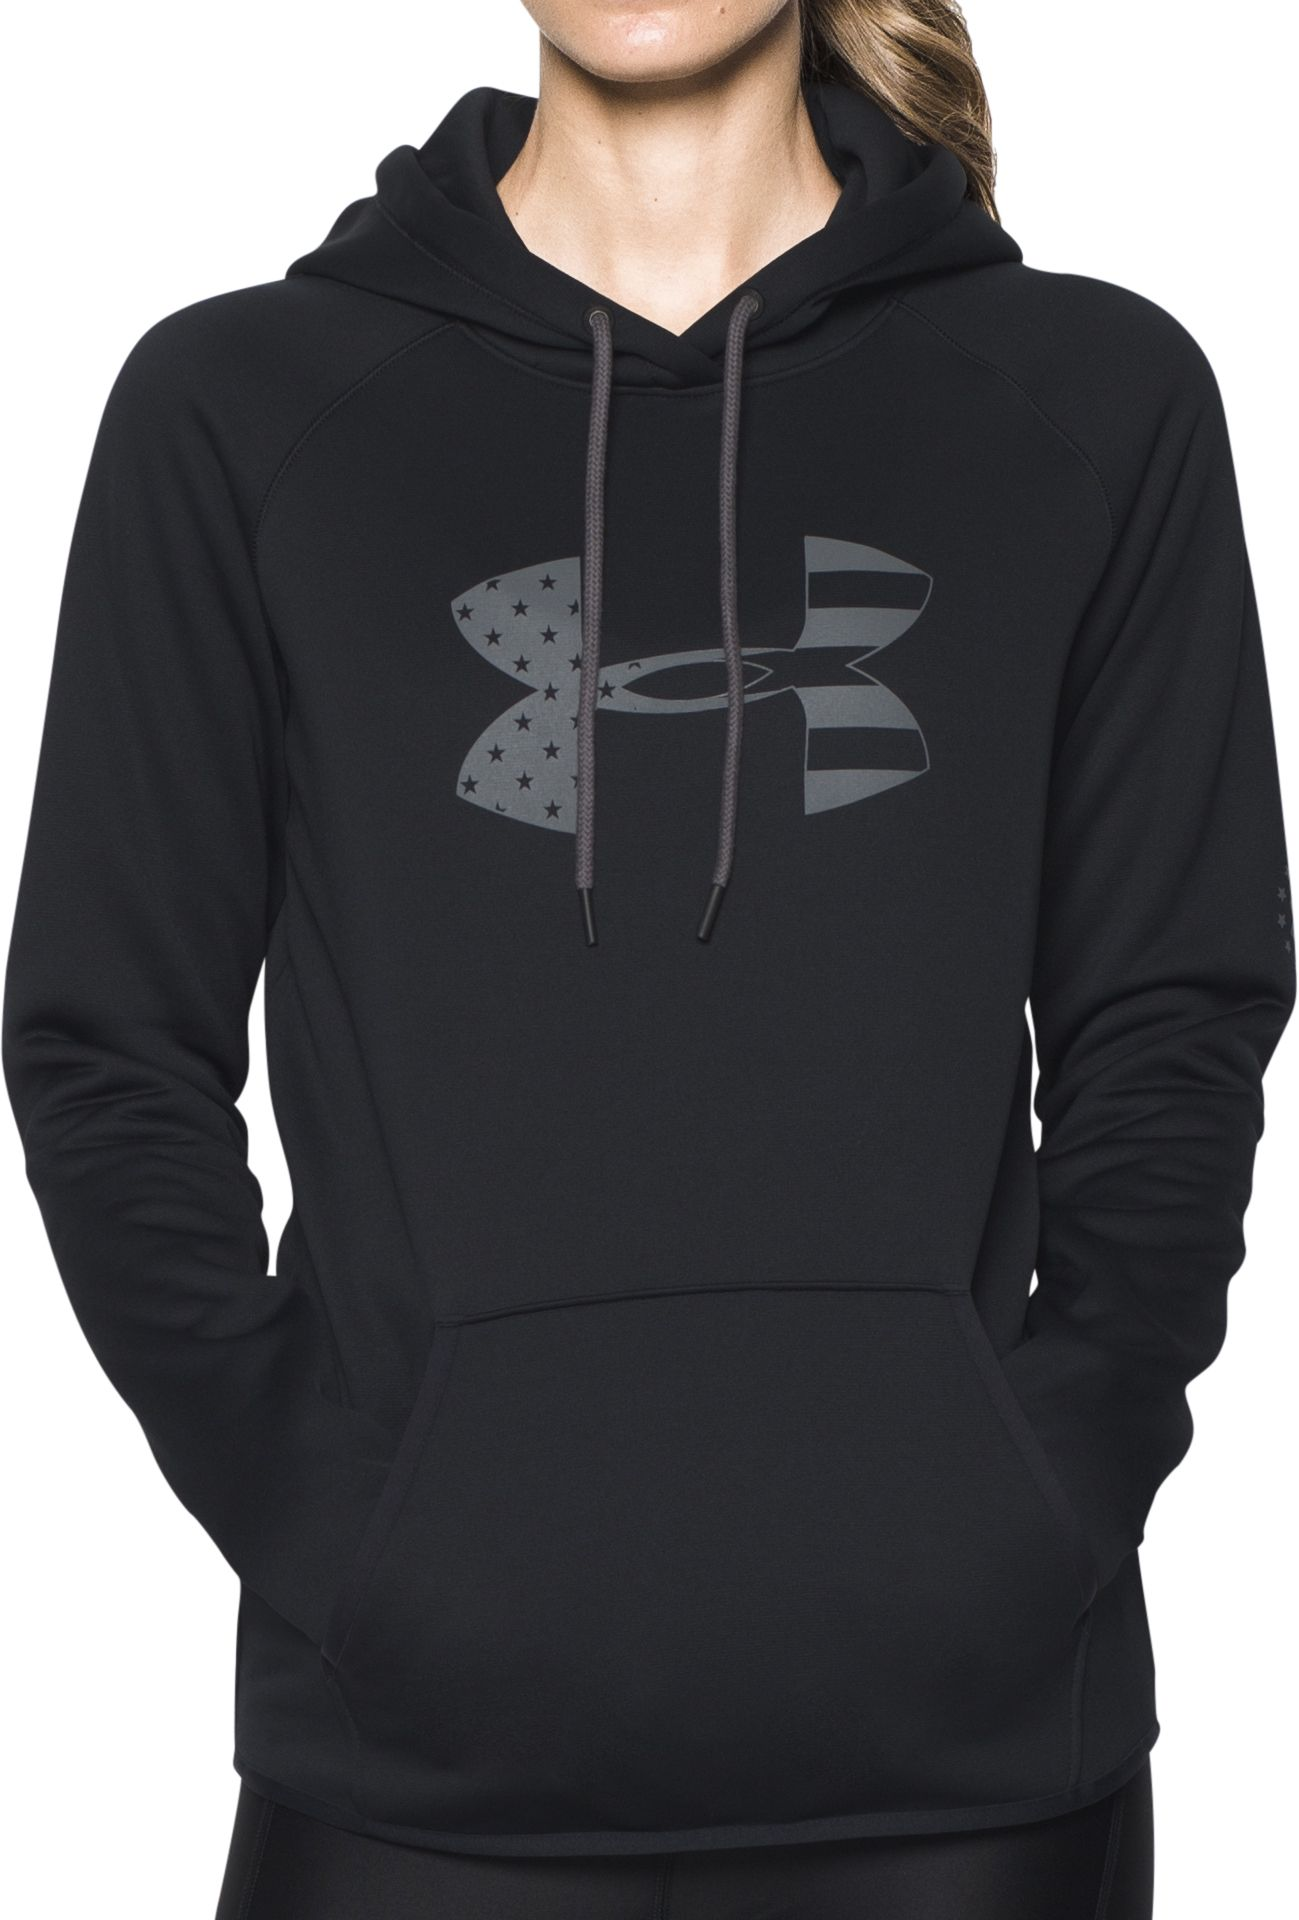 under armour zip up. under armour women\u0027s tactical big flag logo hoodie zip up e